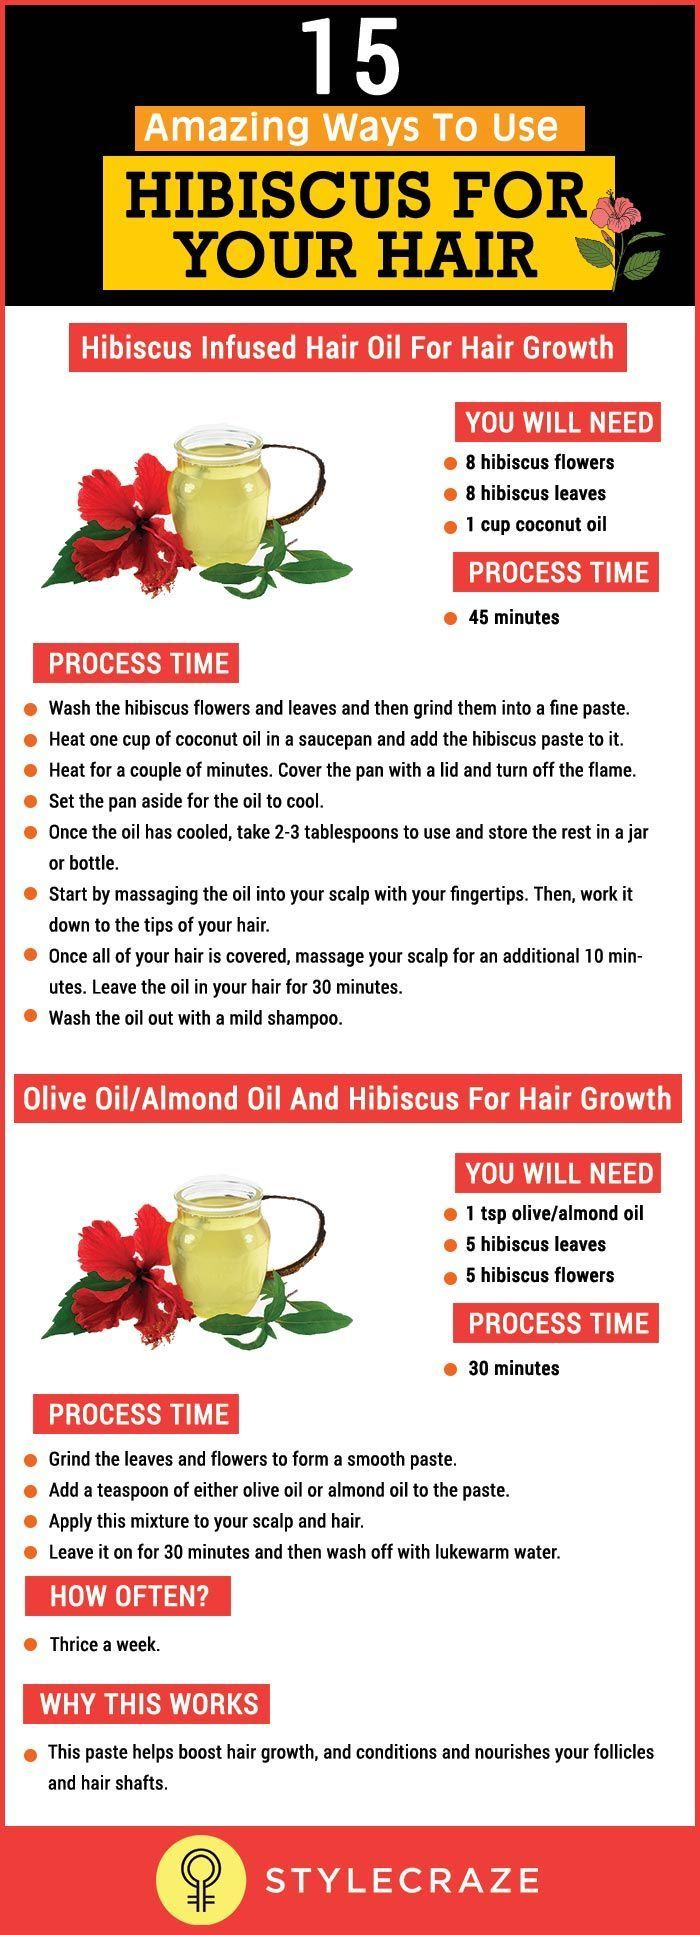 15 Amazing Ways To Use Hibiscus For Your Hair advise